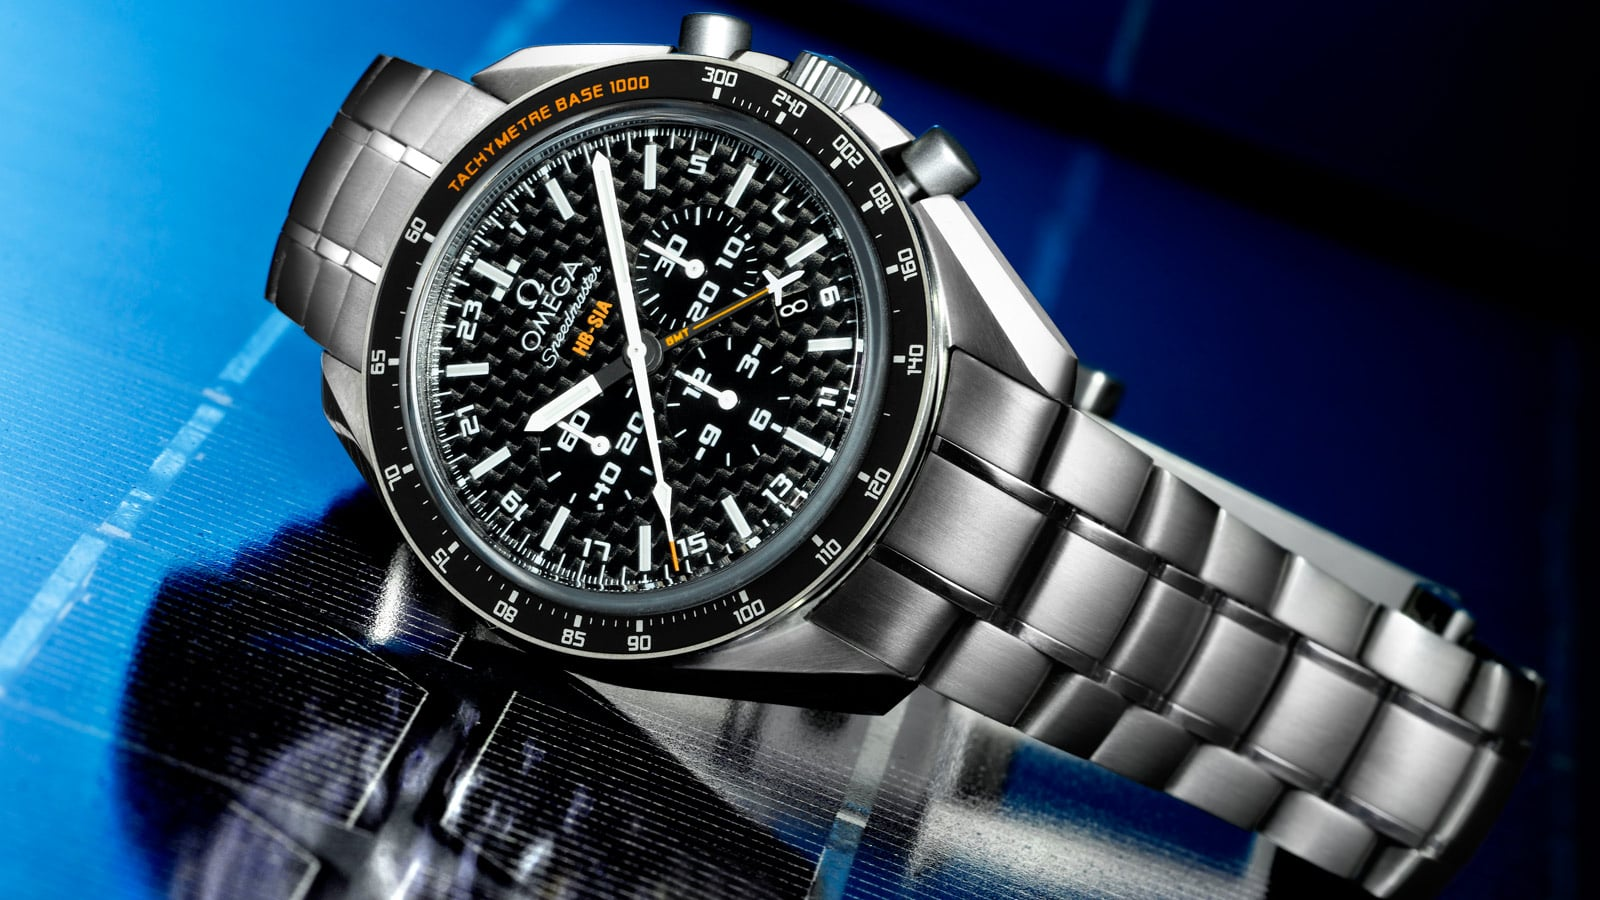 Omega SPEEDMASTER HB-SIA GMT CHRONOGRAPH with titanium bracelet and case a black bezel and a black carbon fiber dial placed on a on a photovoltaic panel